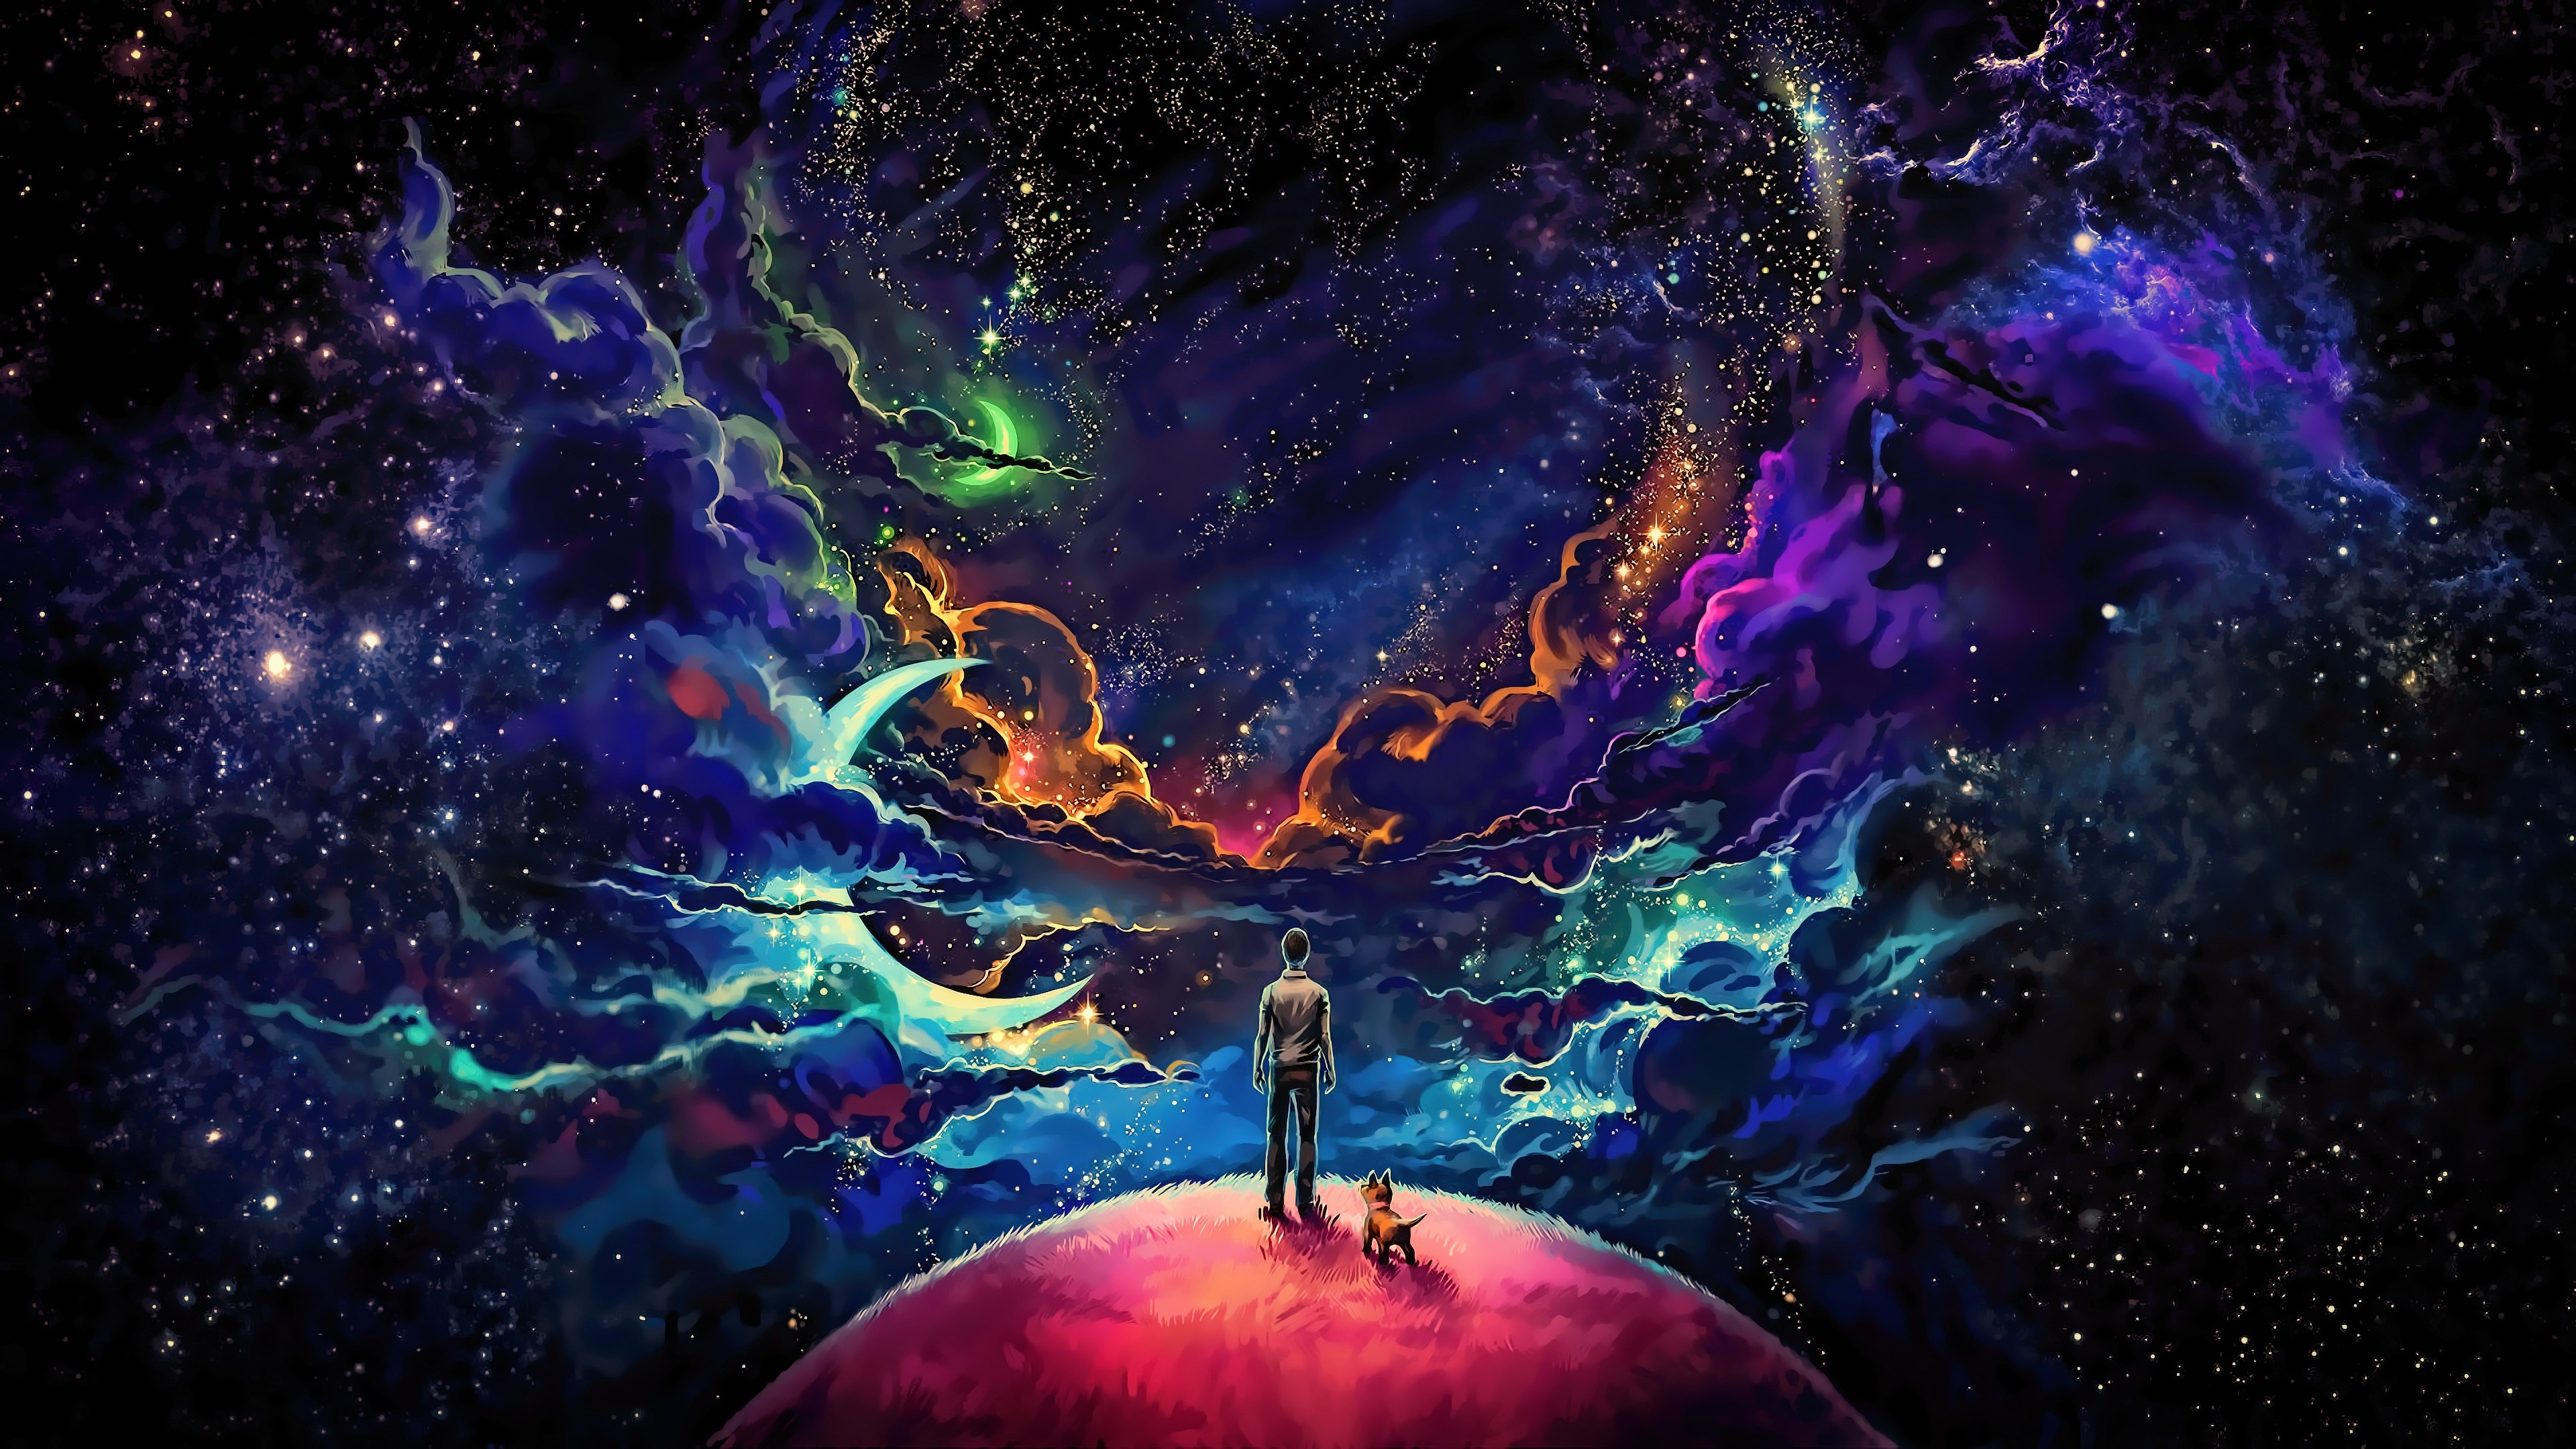 Little Prince with Fox - Colorful Science Fiction Fantasy Art wallpaper